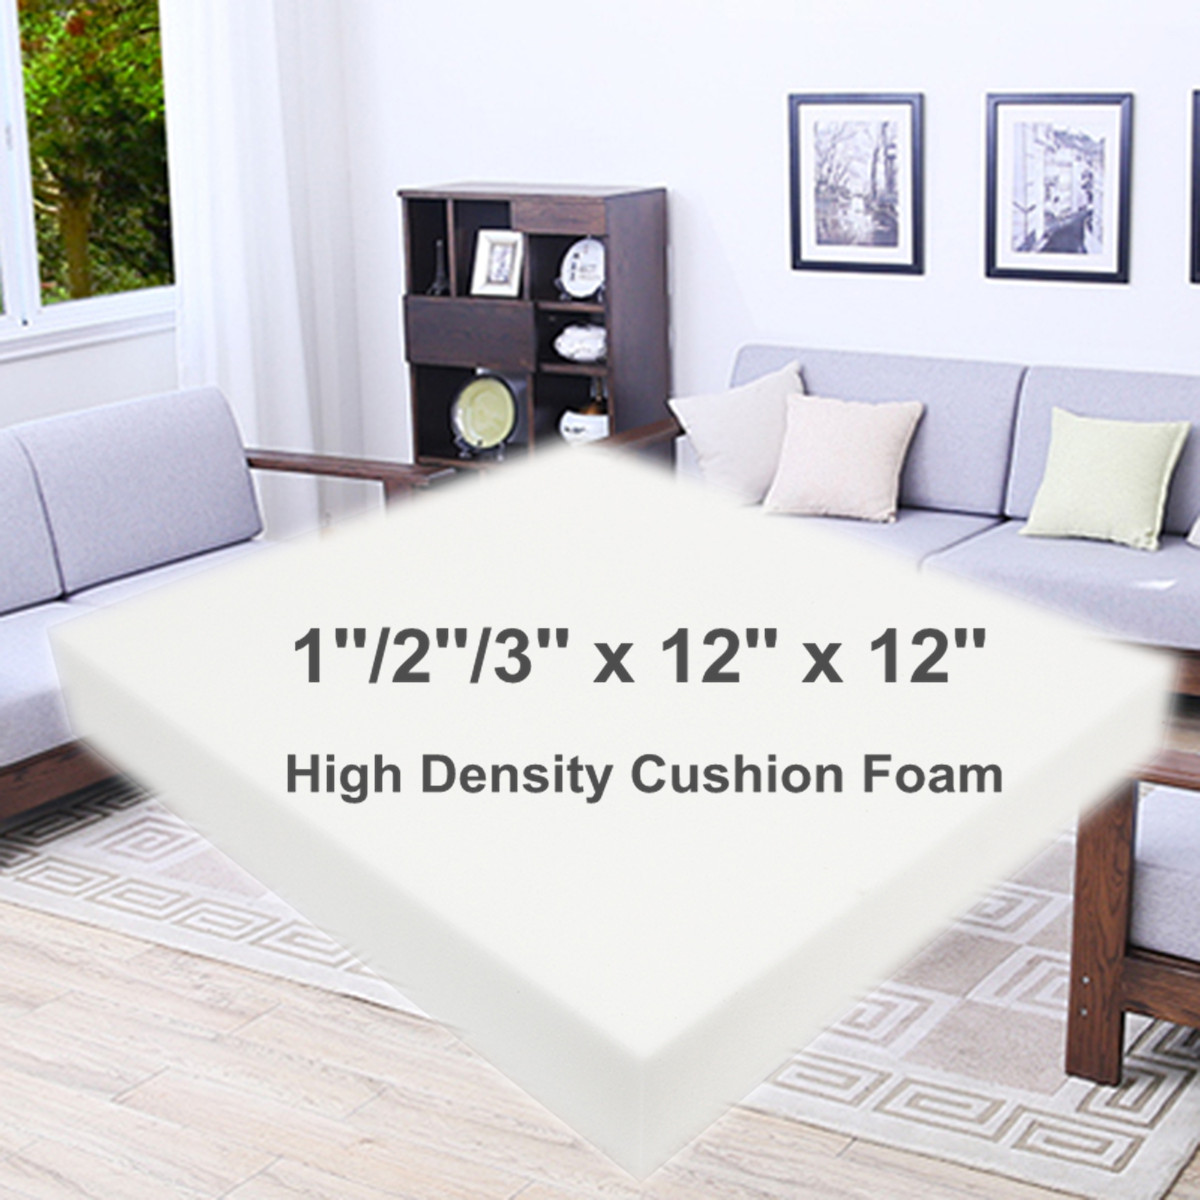 12 Inch Square High Density Seat Foam White Cushion Sheet Upholstery Replacement Pad High Density Premium Chair Cushion Seat Pad